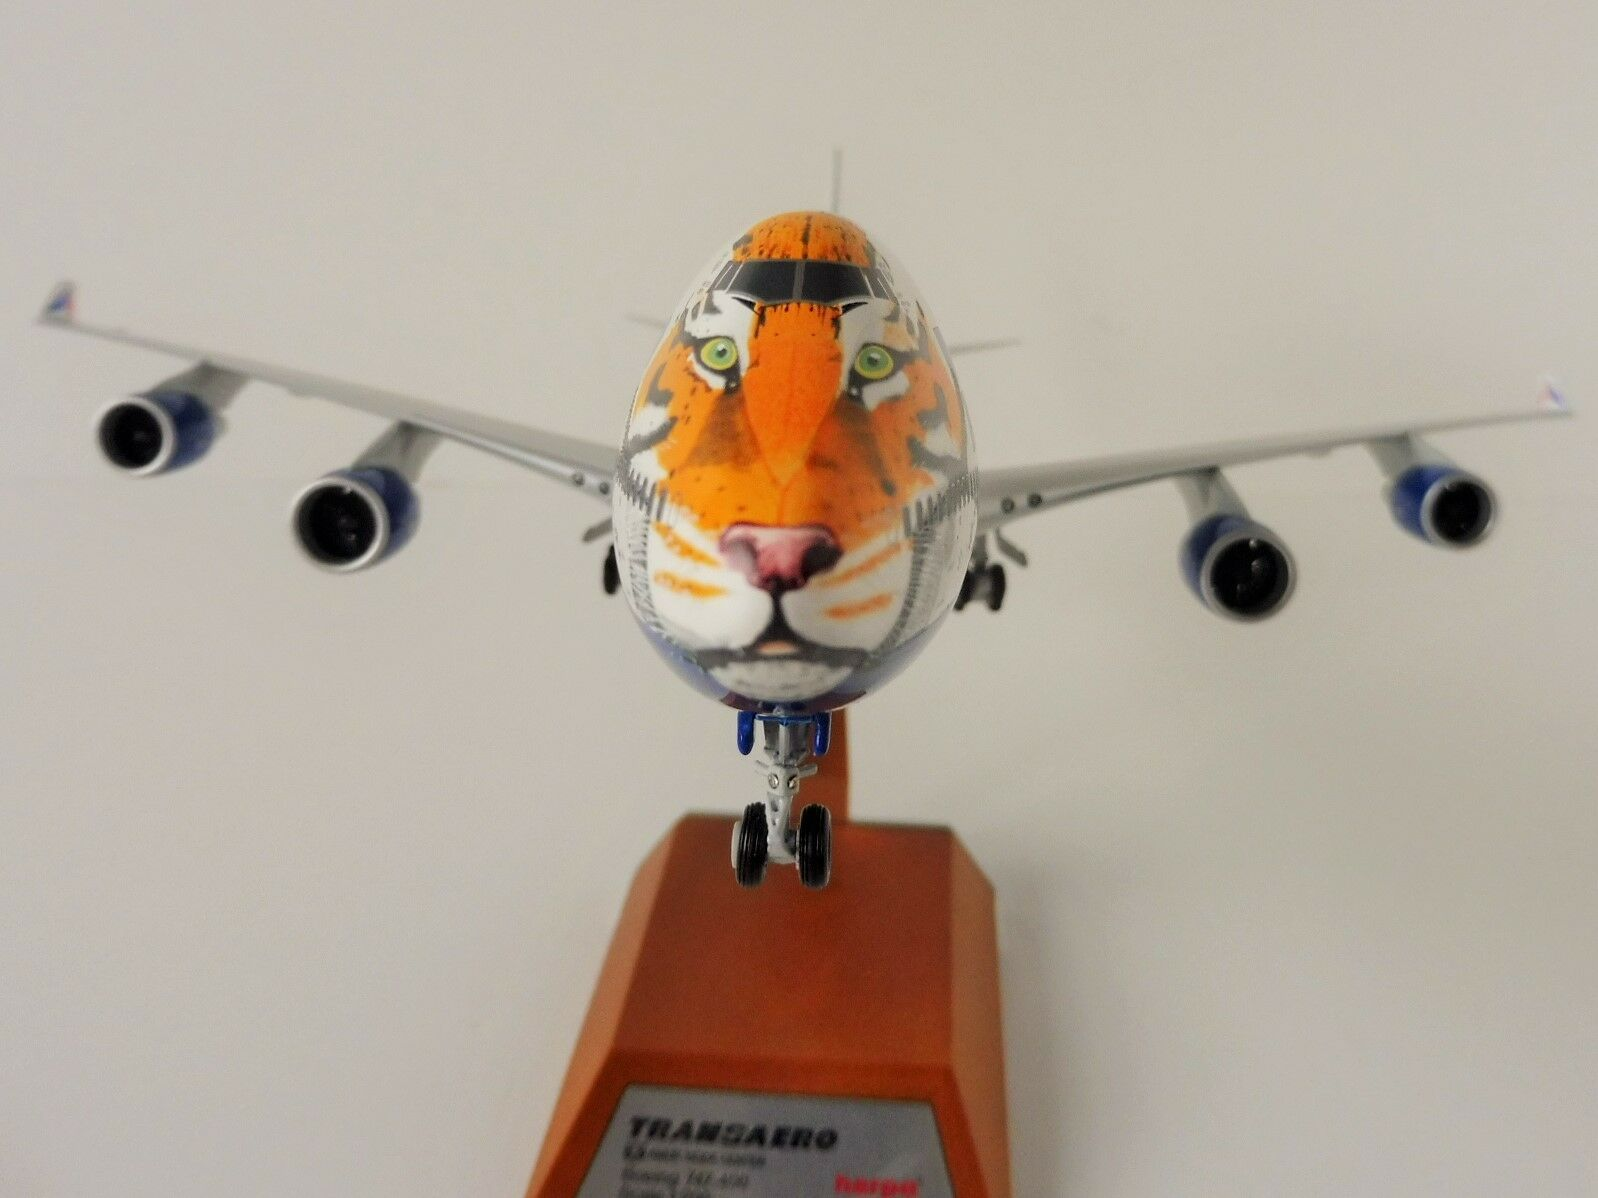 Cupido Tiger Transaero Airlines Boeing 747-400 1/200 Herpa 557917 747 Modello in